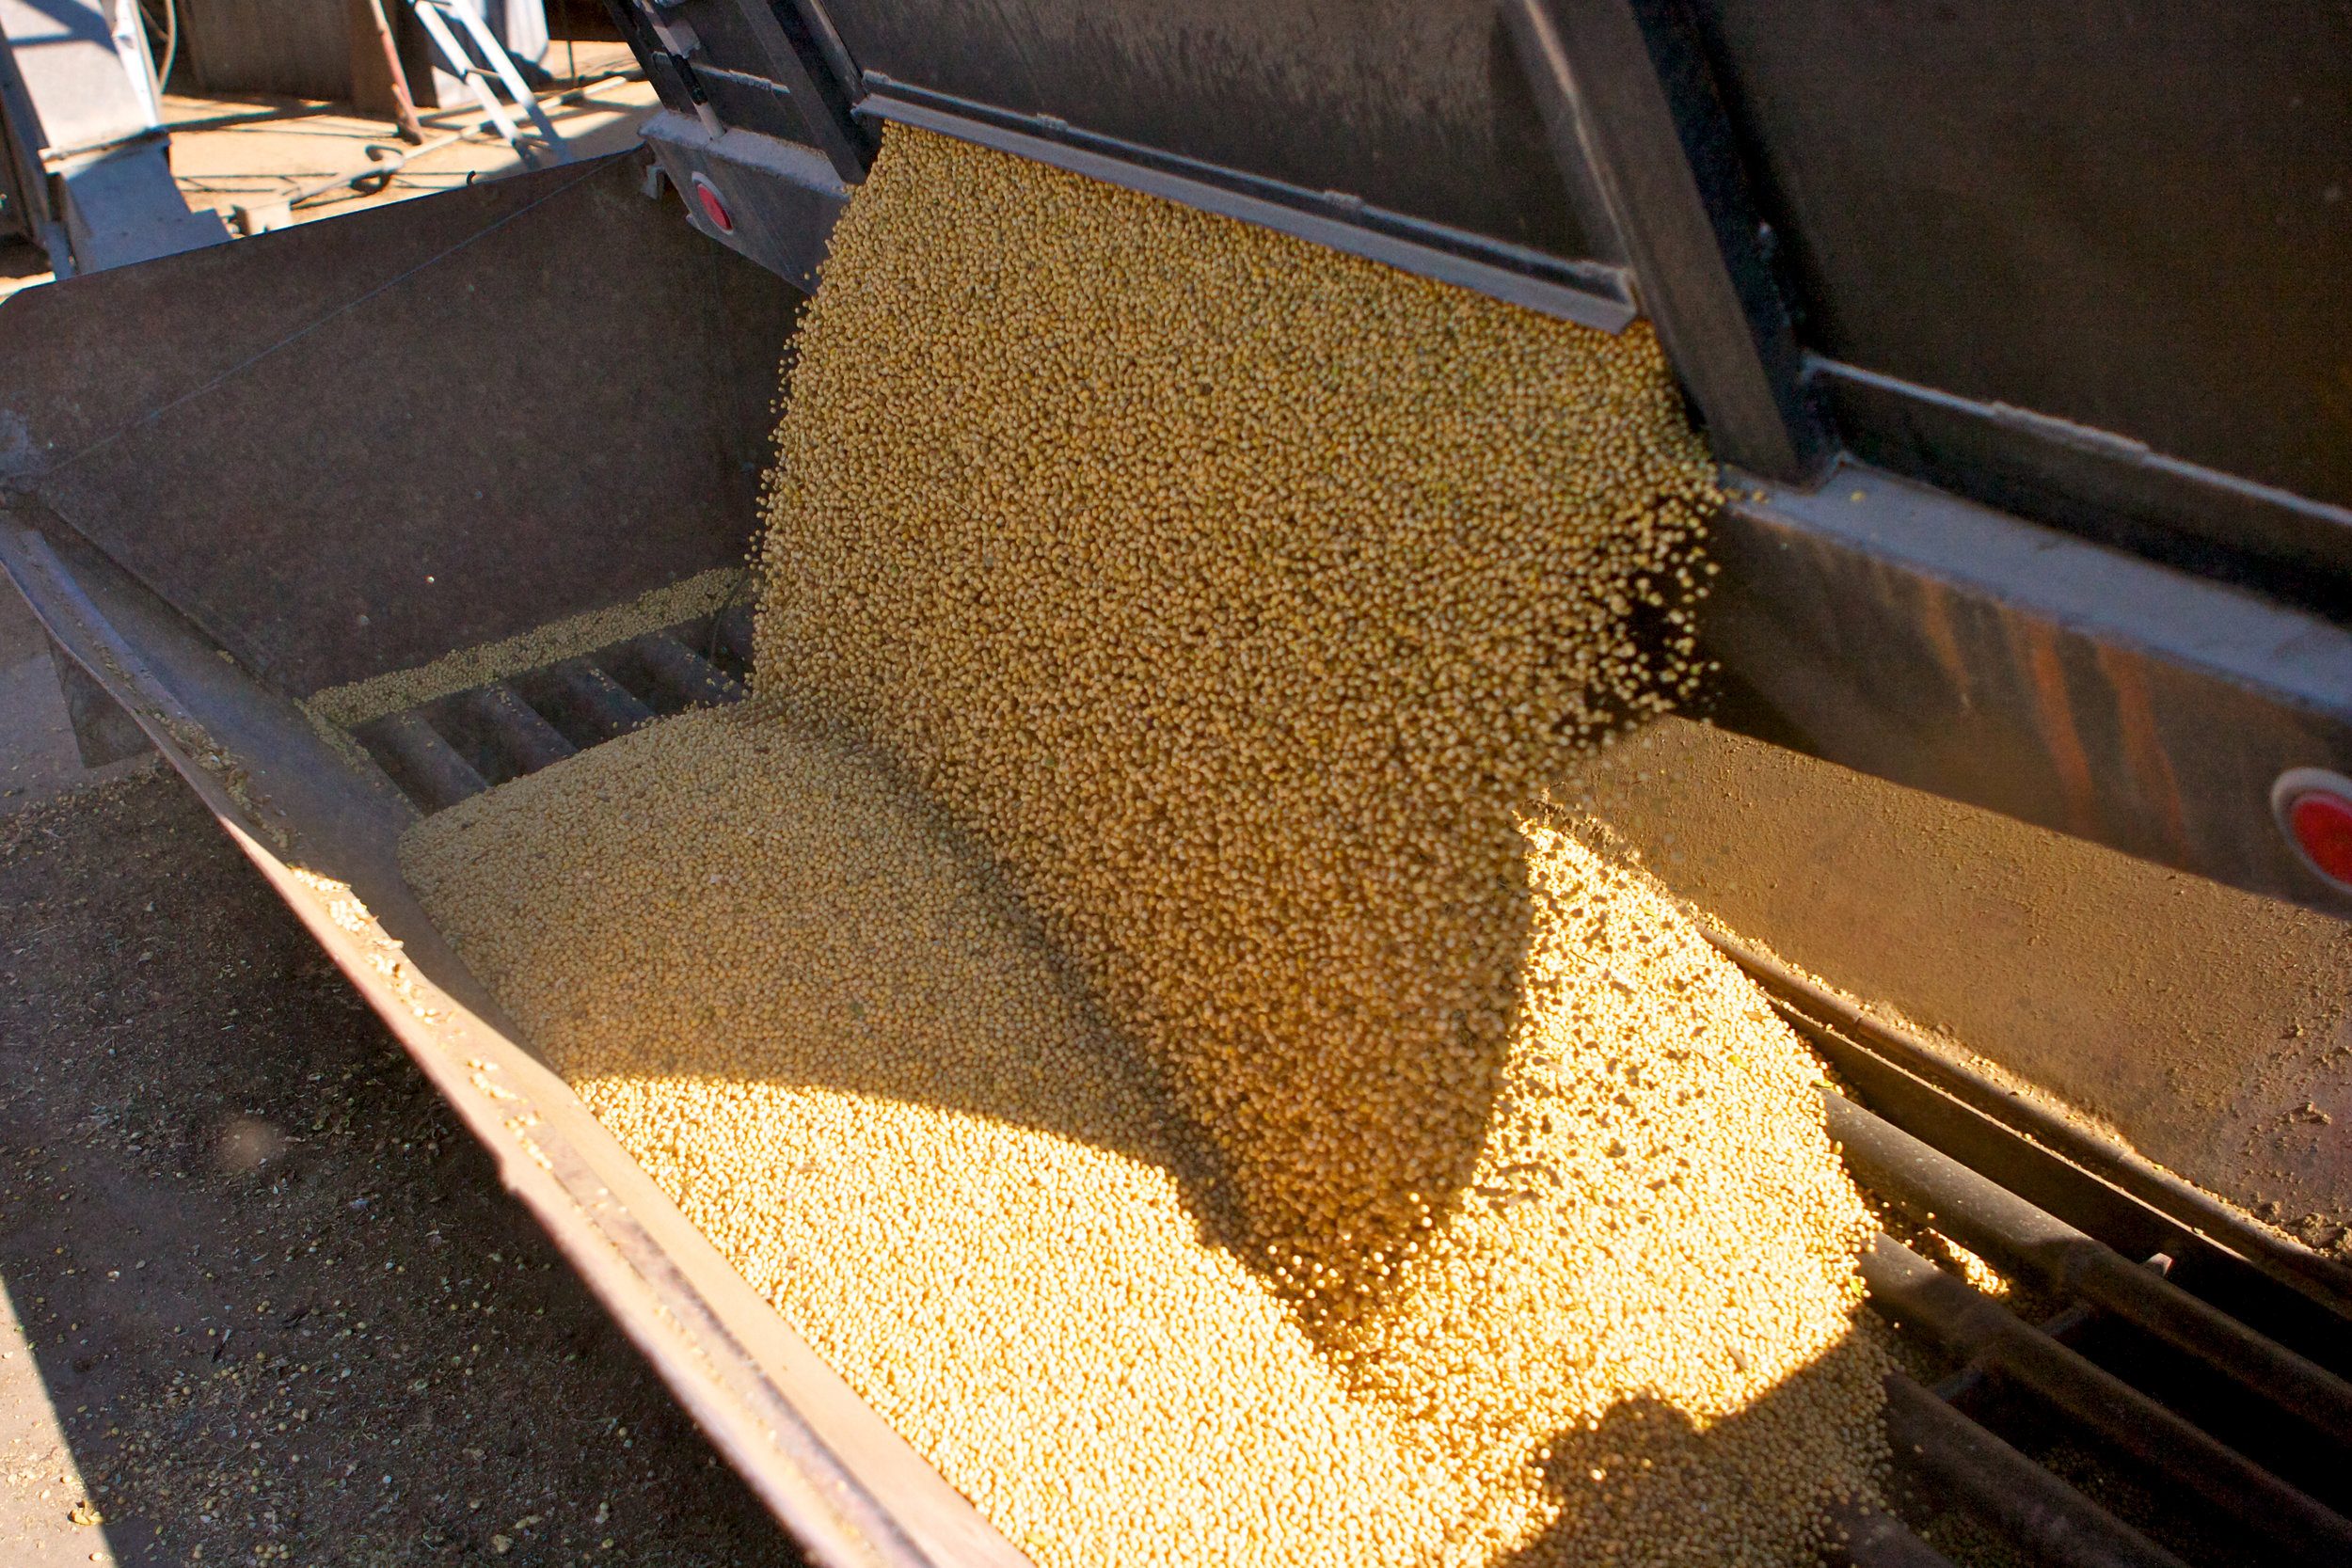 SquarespaceImage19-soybeans-unloadingbeans.jpg